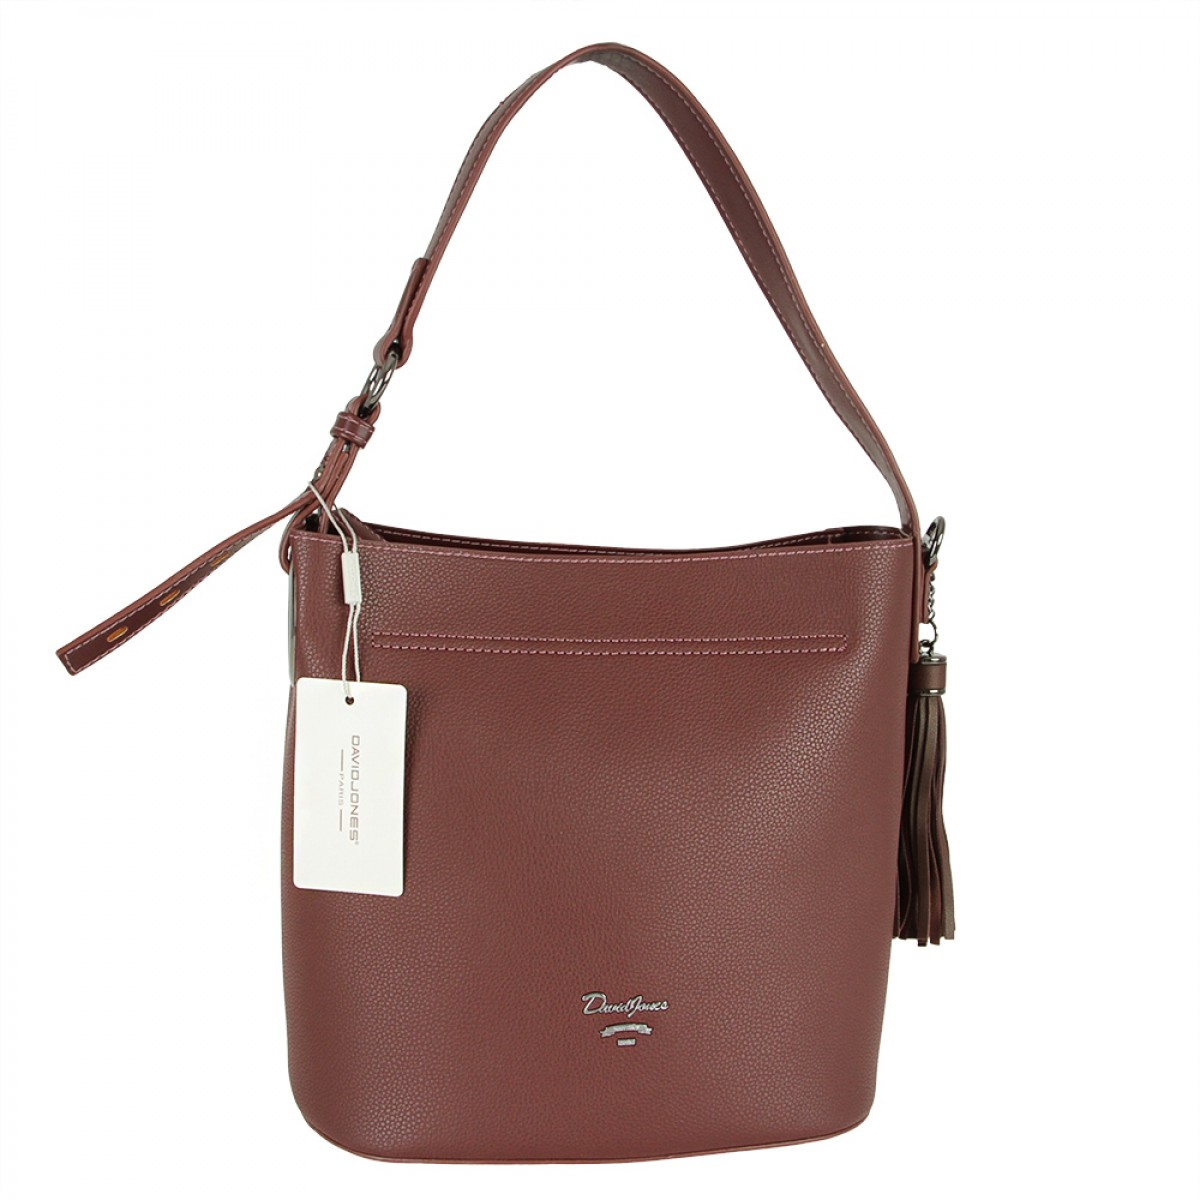 Жіноча сумка David Jones CM5340 DARK BORDEAUX